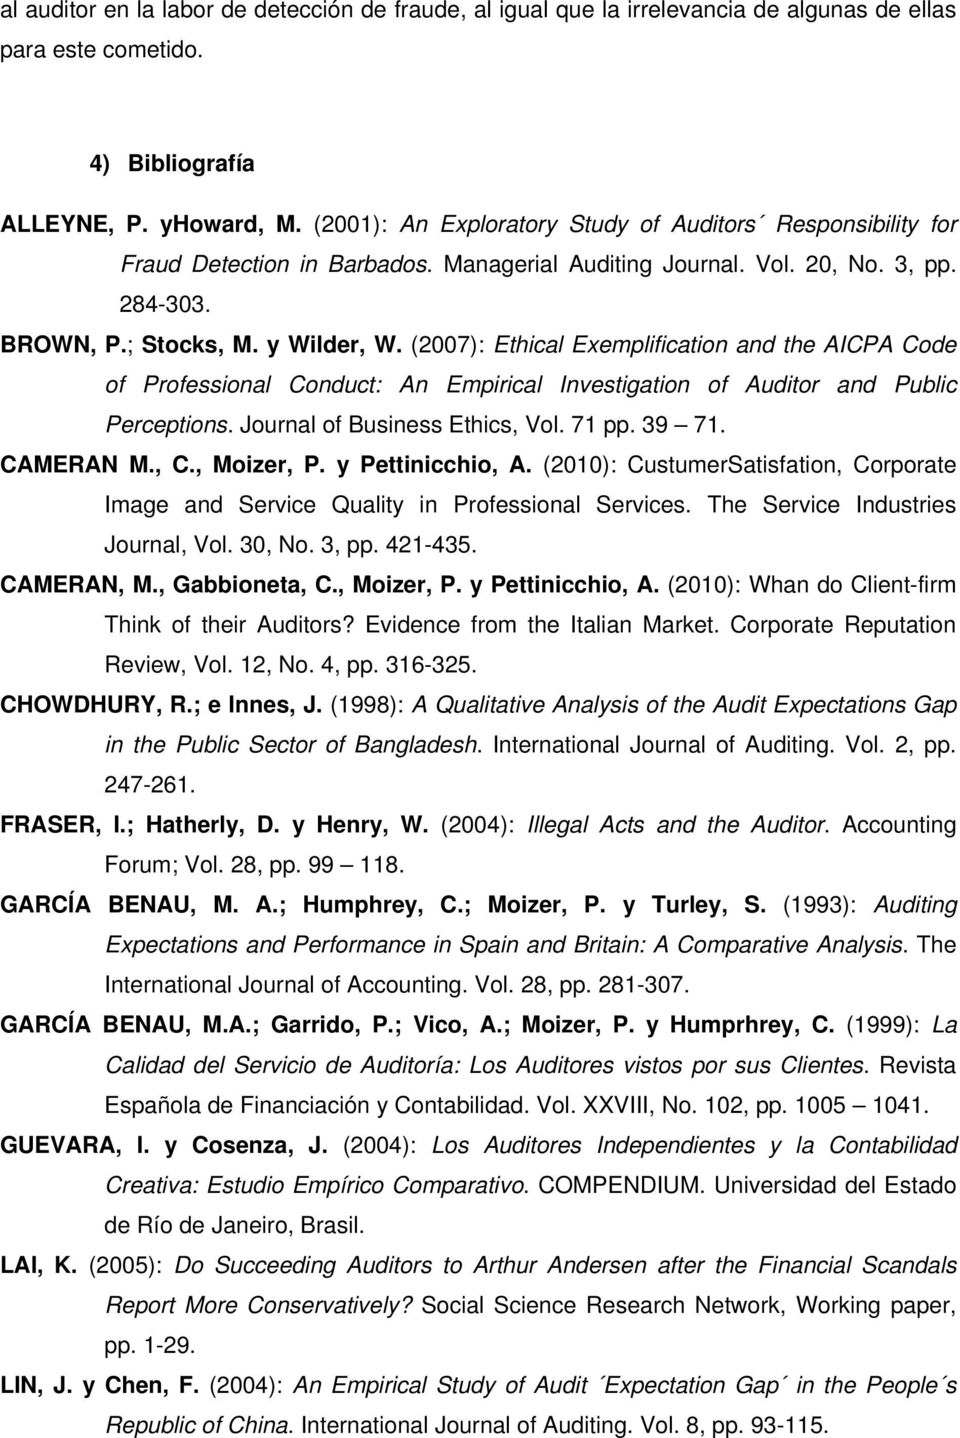 (2007): Ethical Exemplification and the AICPA Code of Professional Conduct: An Empirical Investigation of Auditor and Public Perceptions. Journal of Business Ethics, Vol. 71 pp. 39 71. CAMERAN M., C.